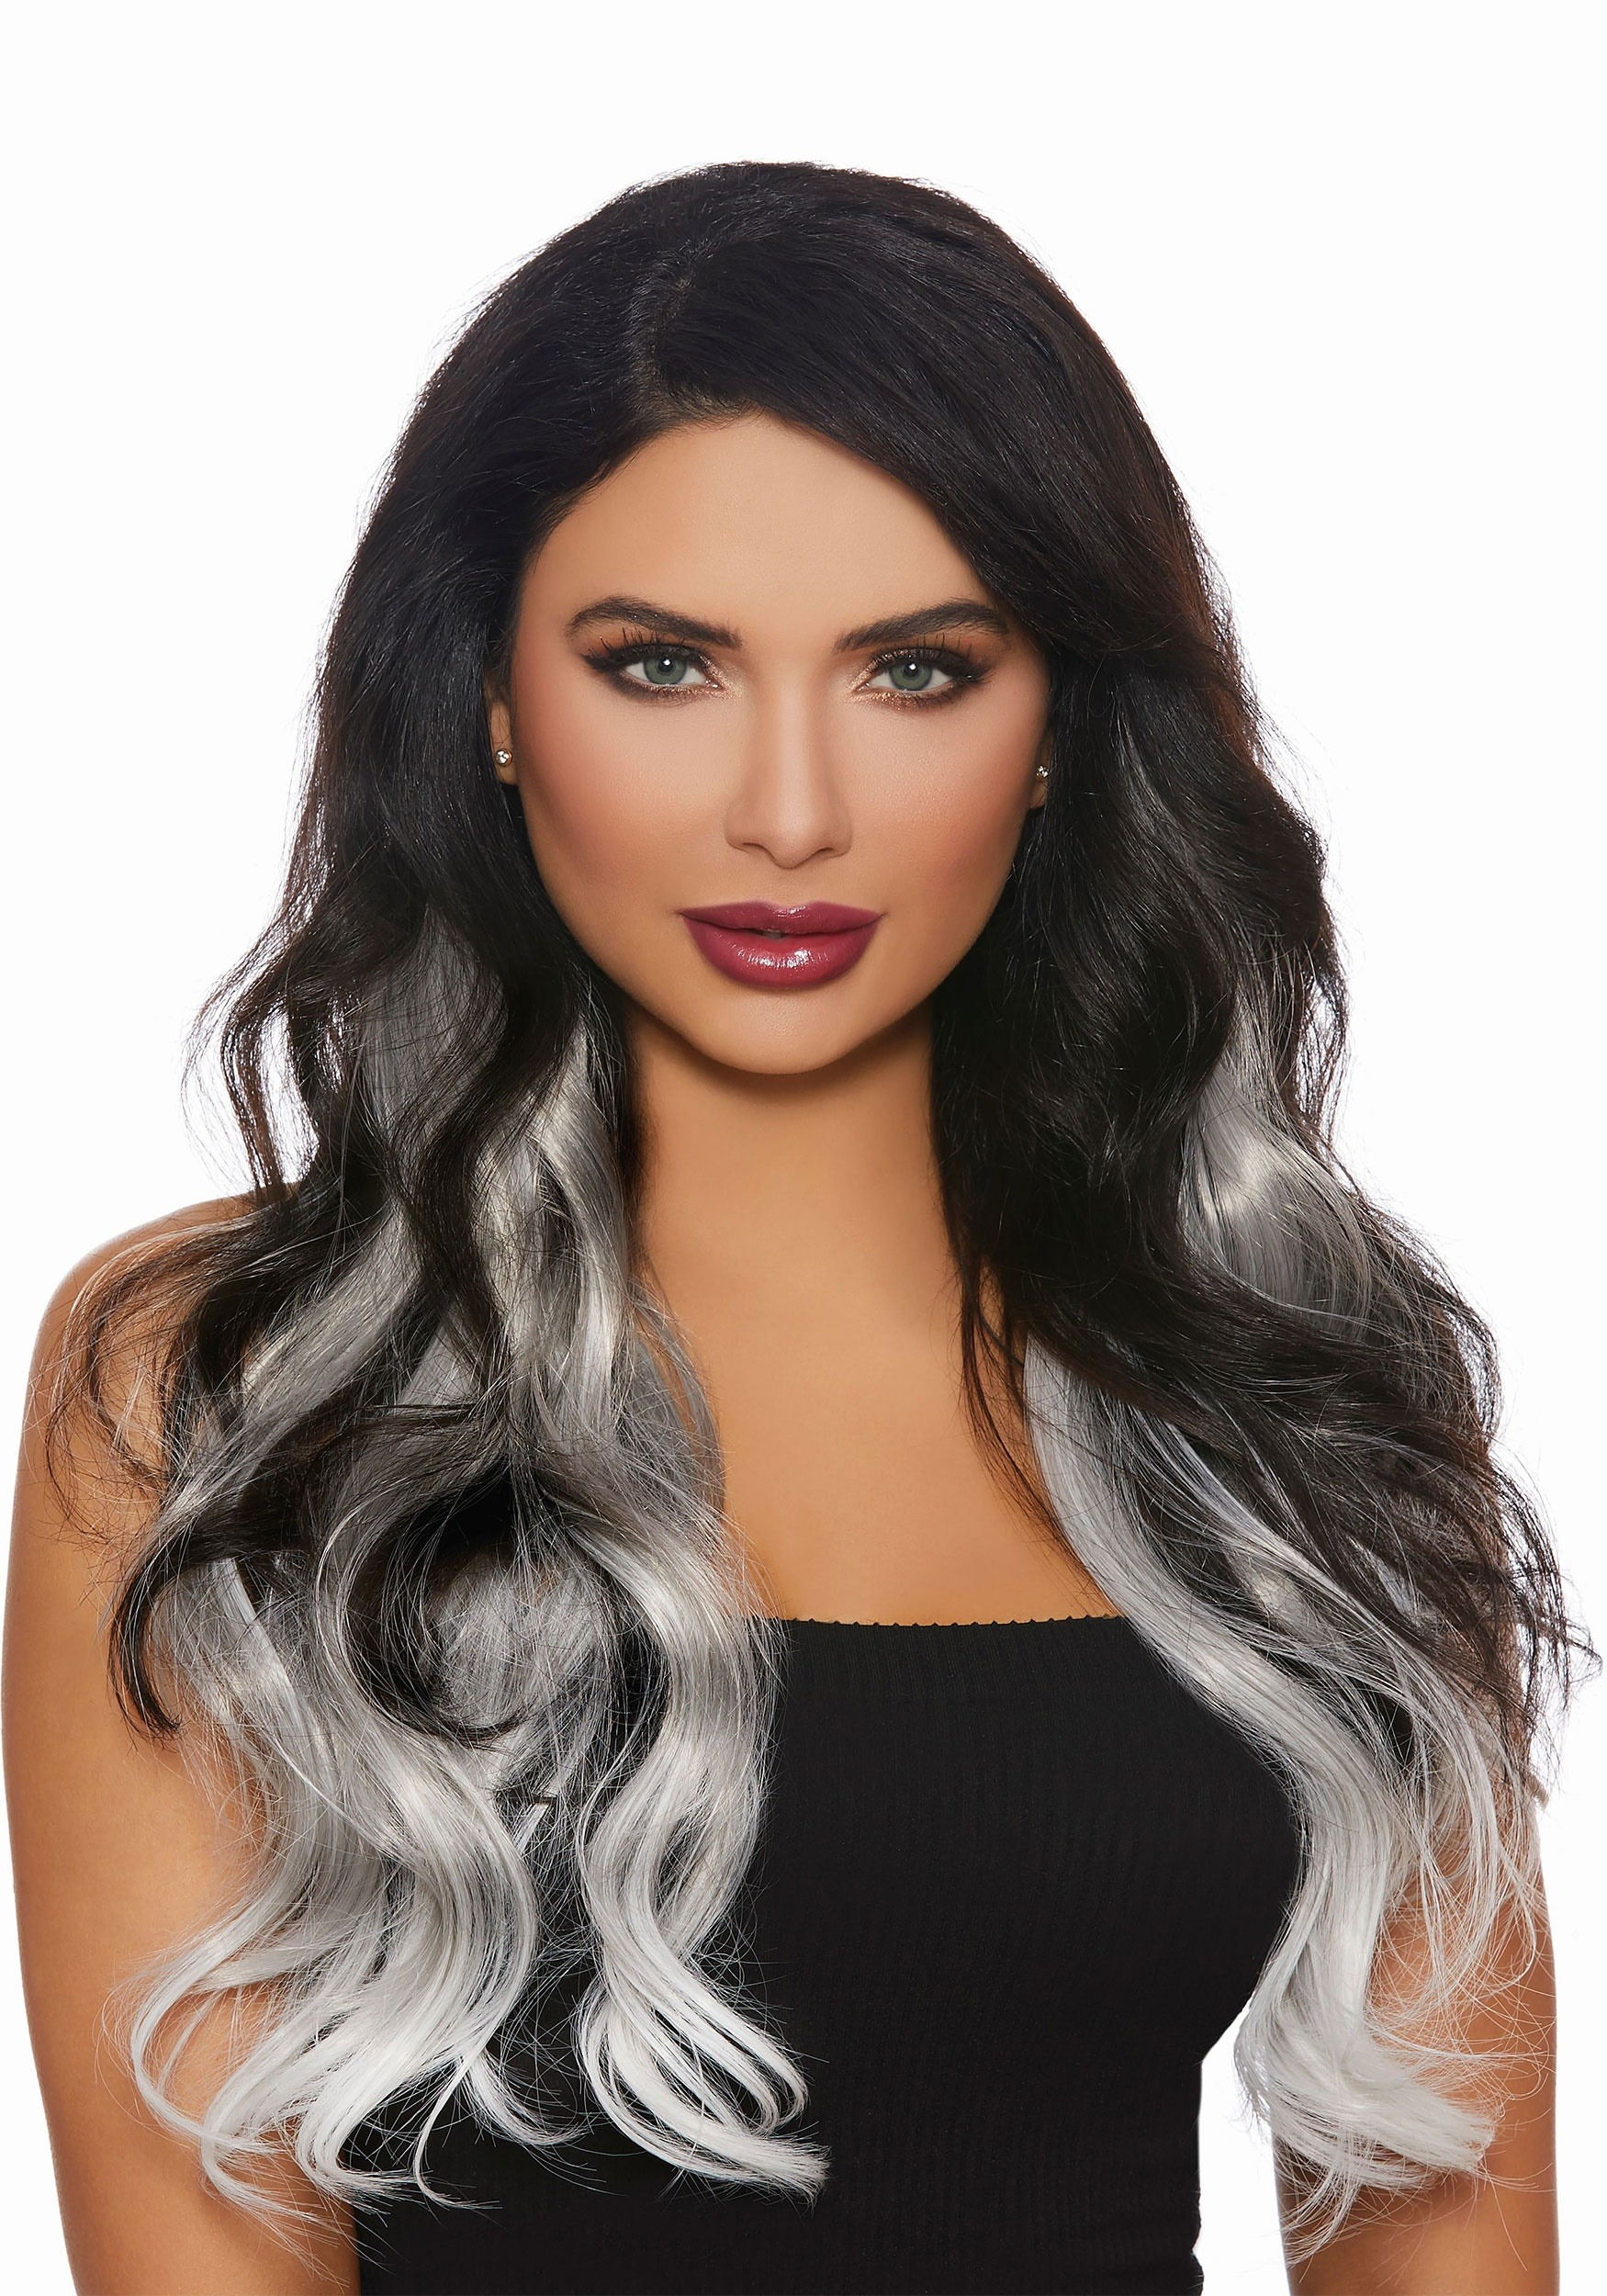 3-Piece Long Straight Ombre Grey/White Hair Extensions